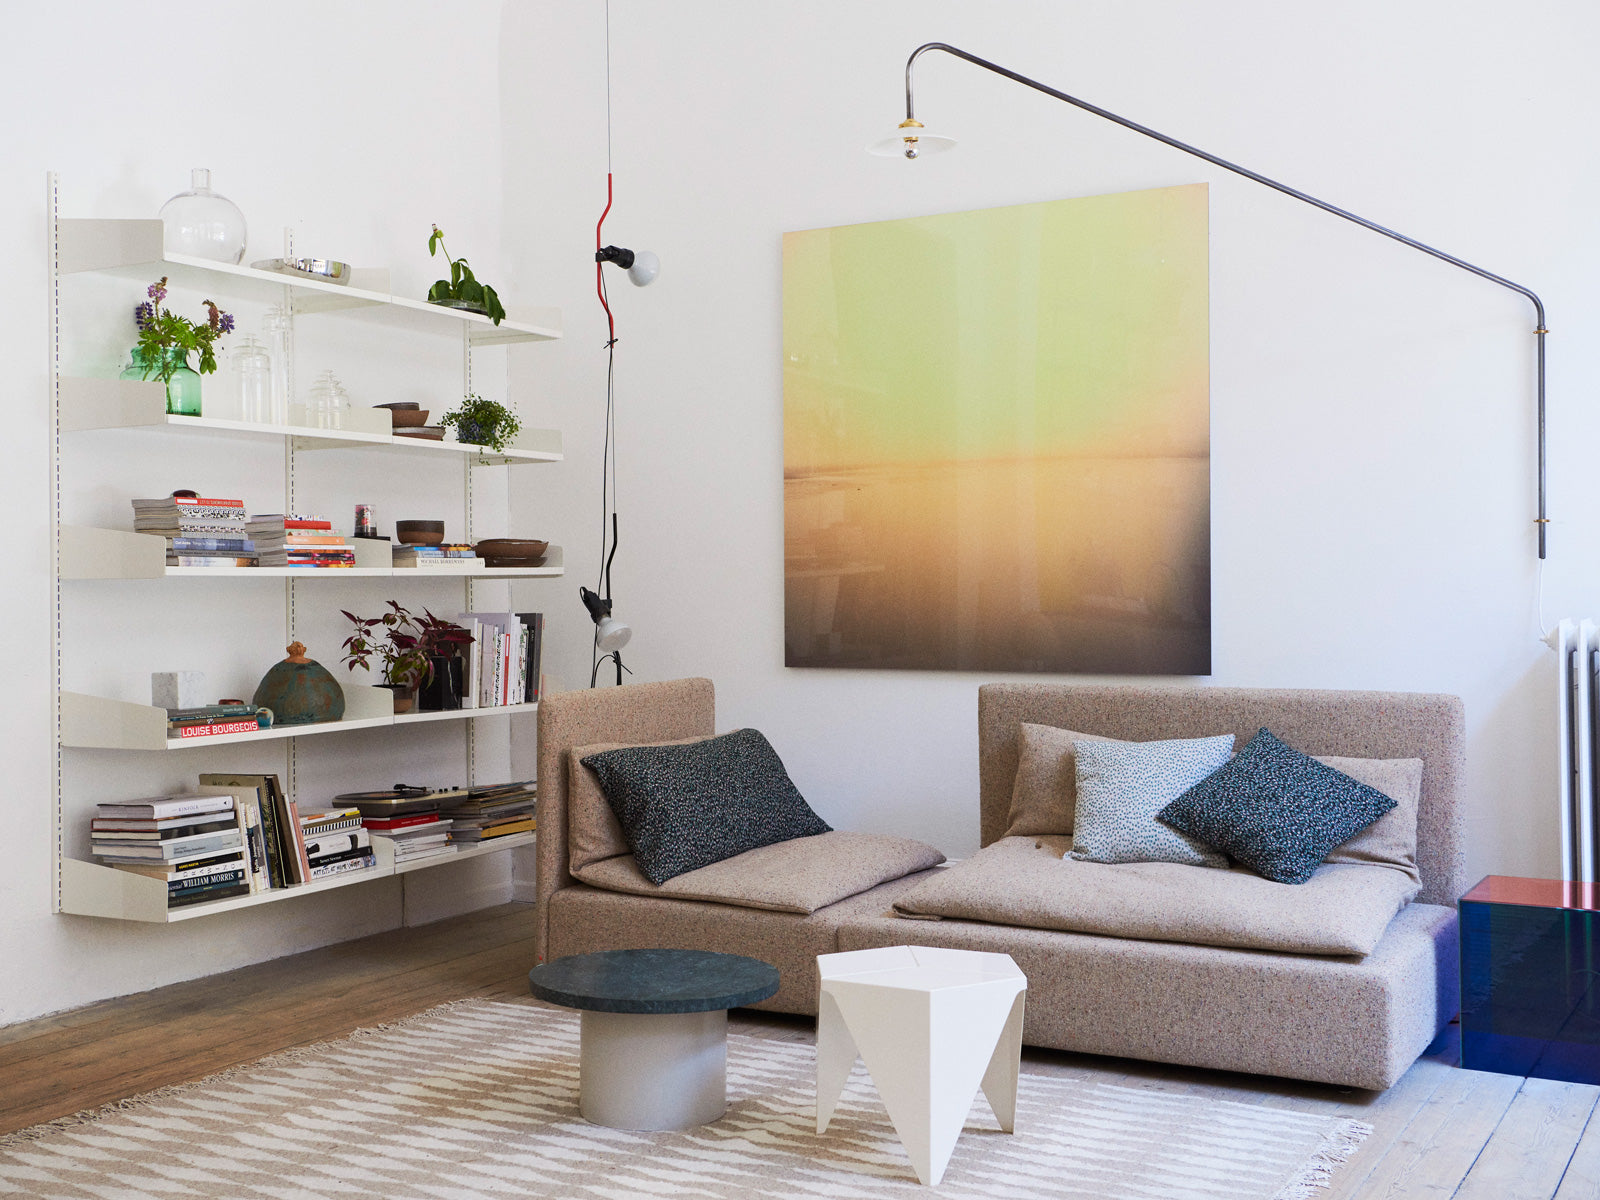 studio x viaduct interior Shiraz sofa e15 muller van severen hanging lamp vitra prismatic table castiglioni parantesi lamp